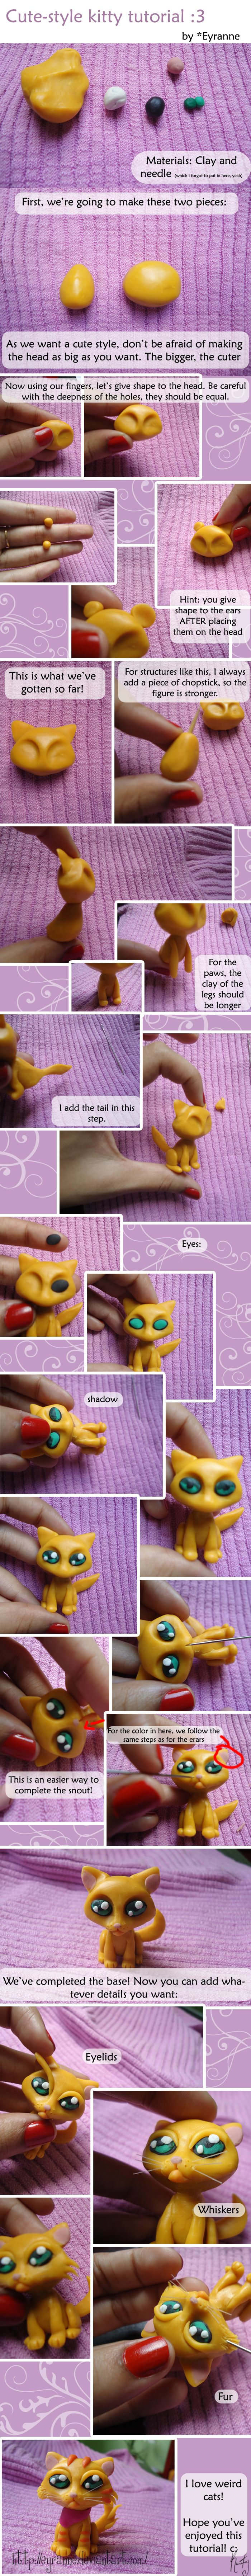 Kitty Tutorial by *Eyranne on deviantART      < I can't wait to make this cutie kitty!>